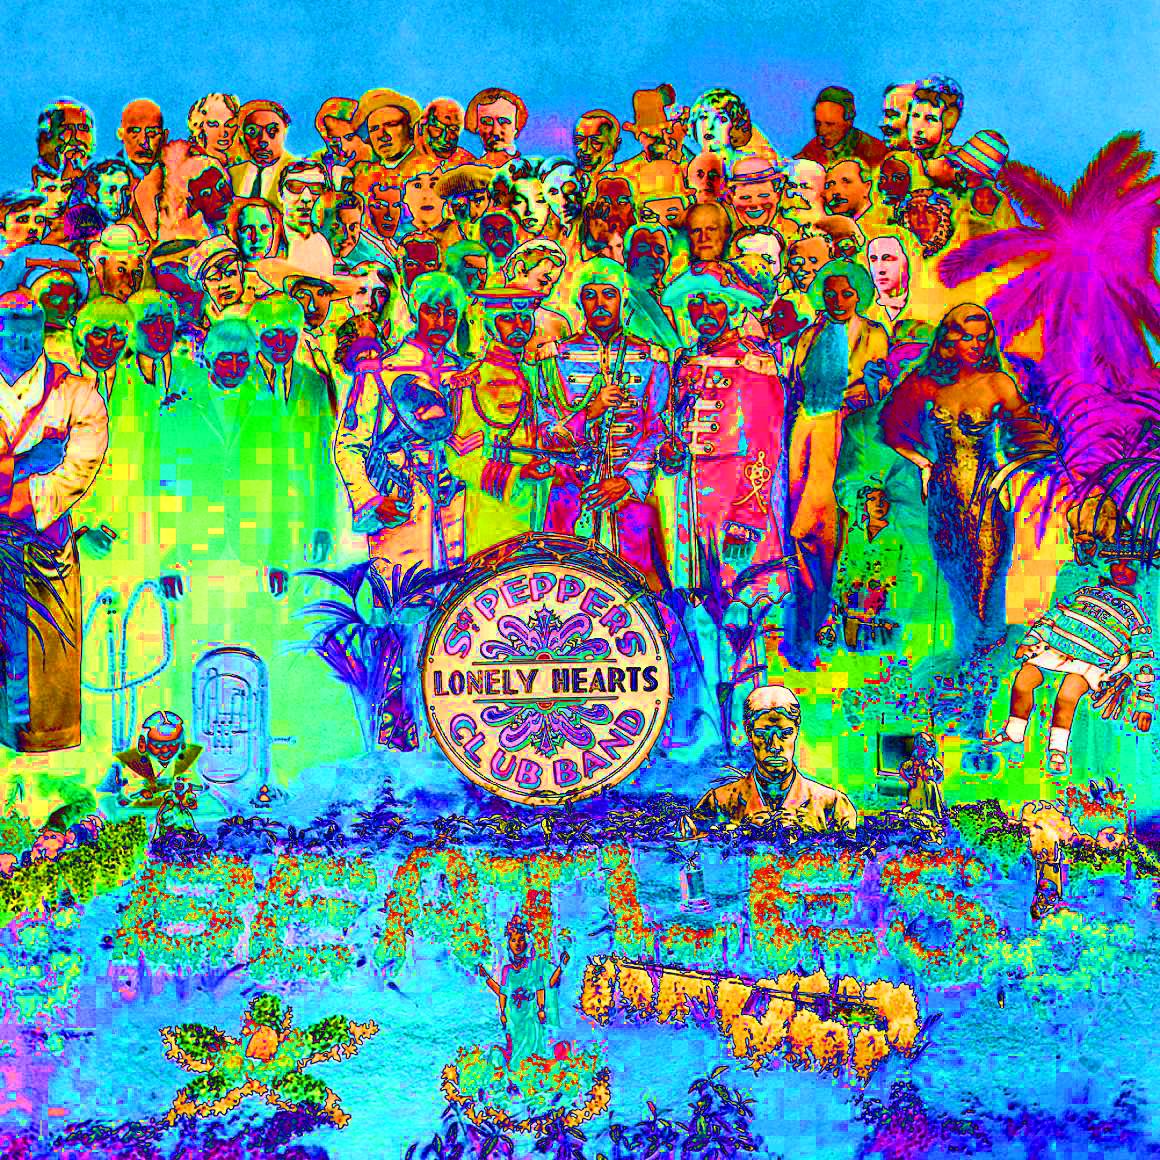 [Image: TheBeatles-Sgt.PeppersLonelyHeartsClubBa...t7f33d.png]